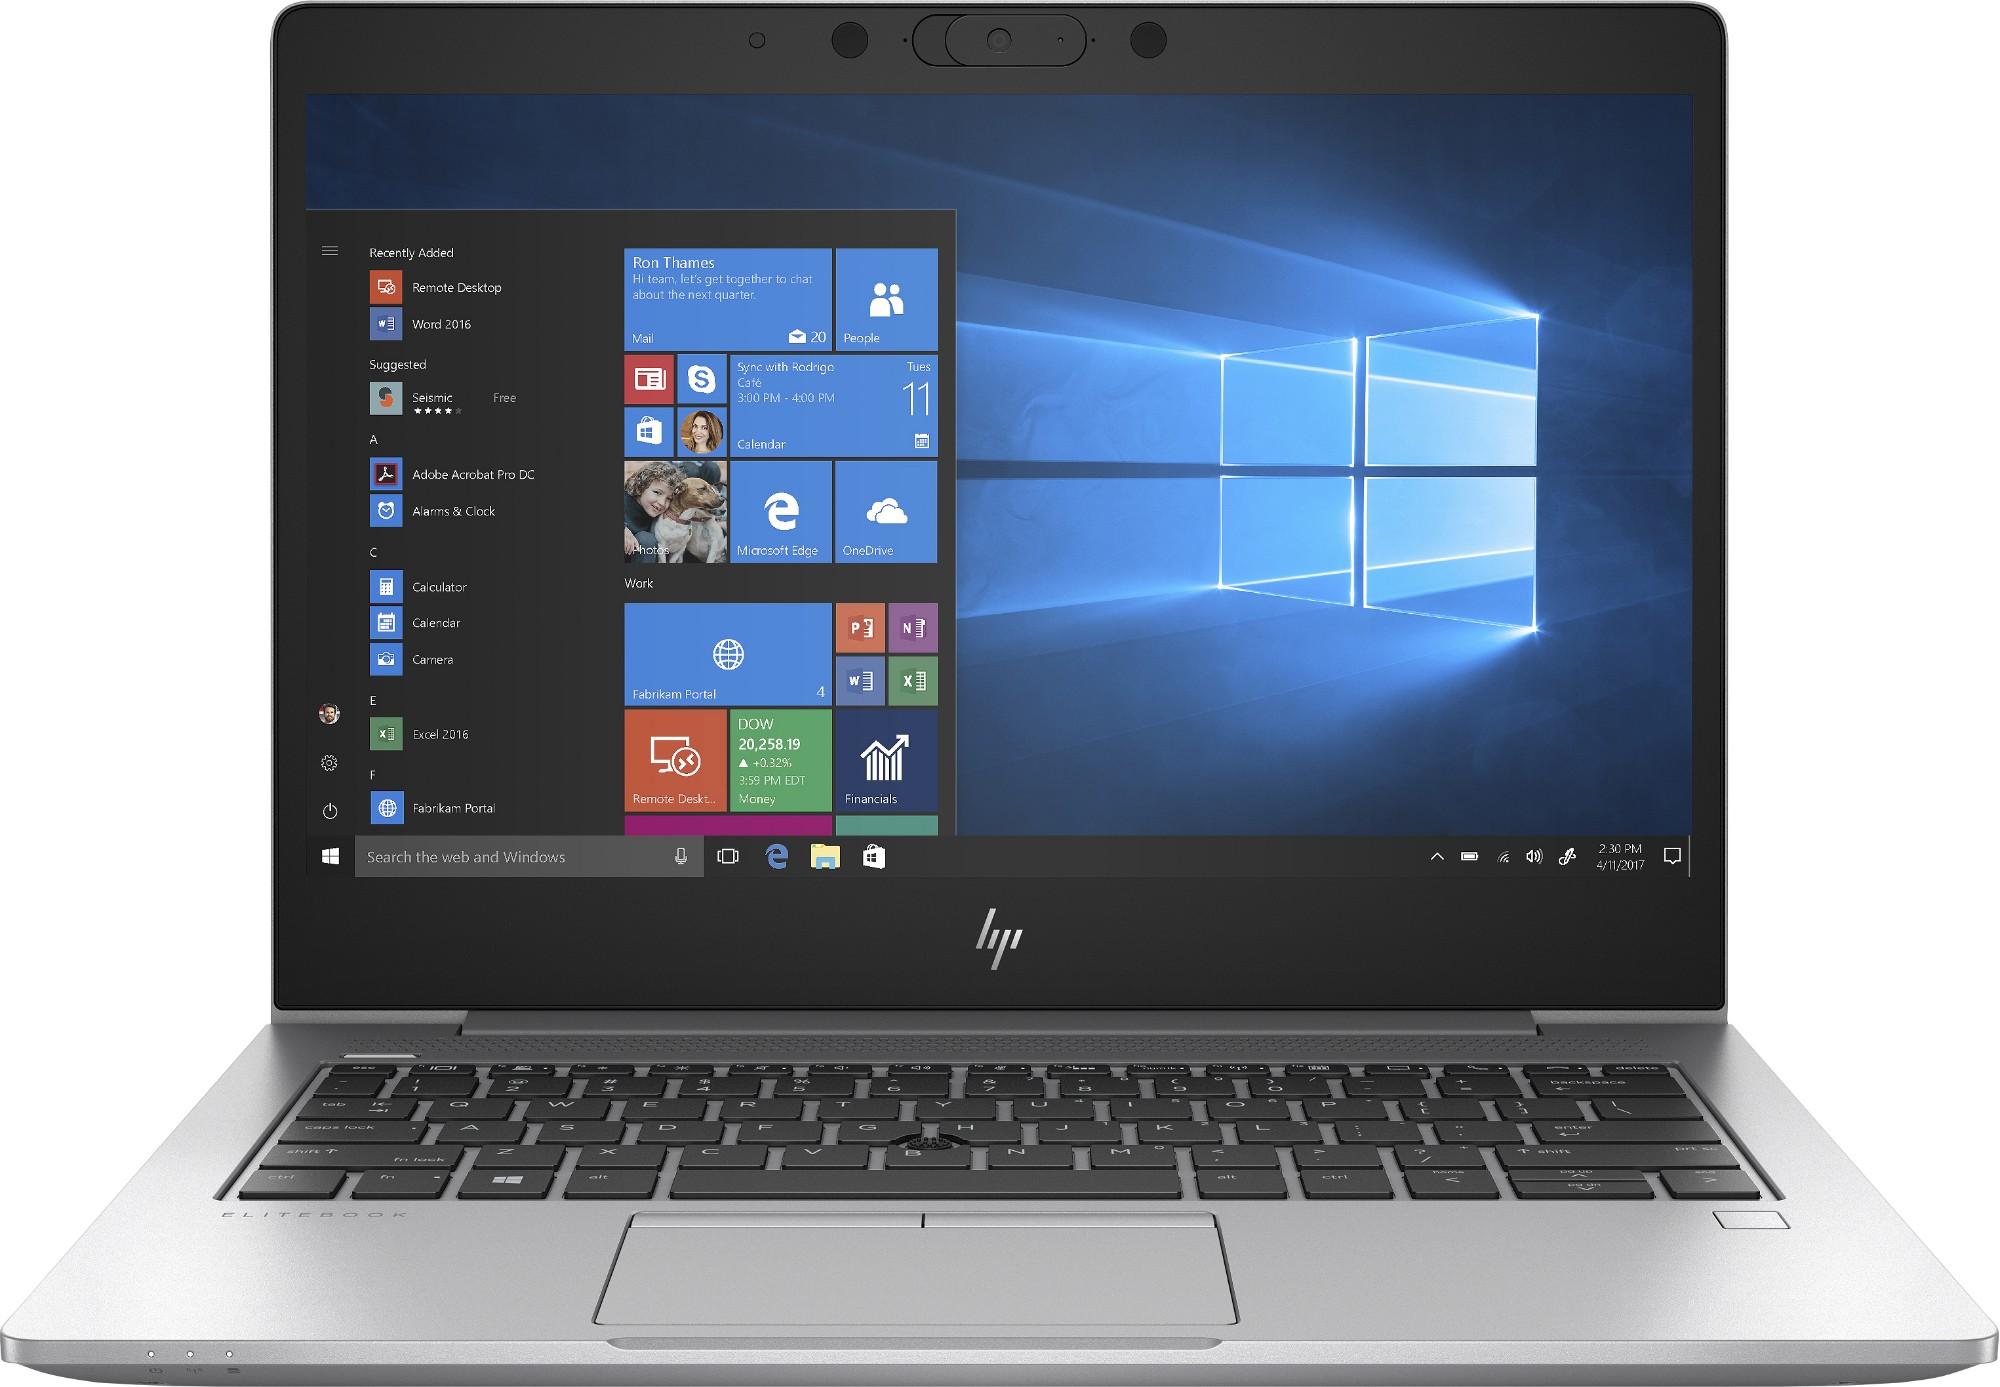 "HP EliteBook 735 G6 Notebook Zilver 33,8 cm (13.3"") 1920 x 1080 Pixels AMD Ryzen 5 8 GB DDR4-SDRAM 256 GB SSD Wi-Fi 6 (802.11ax) Windows 10 Pro"